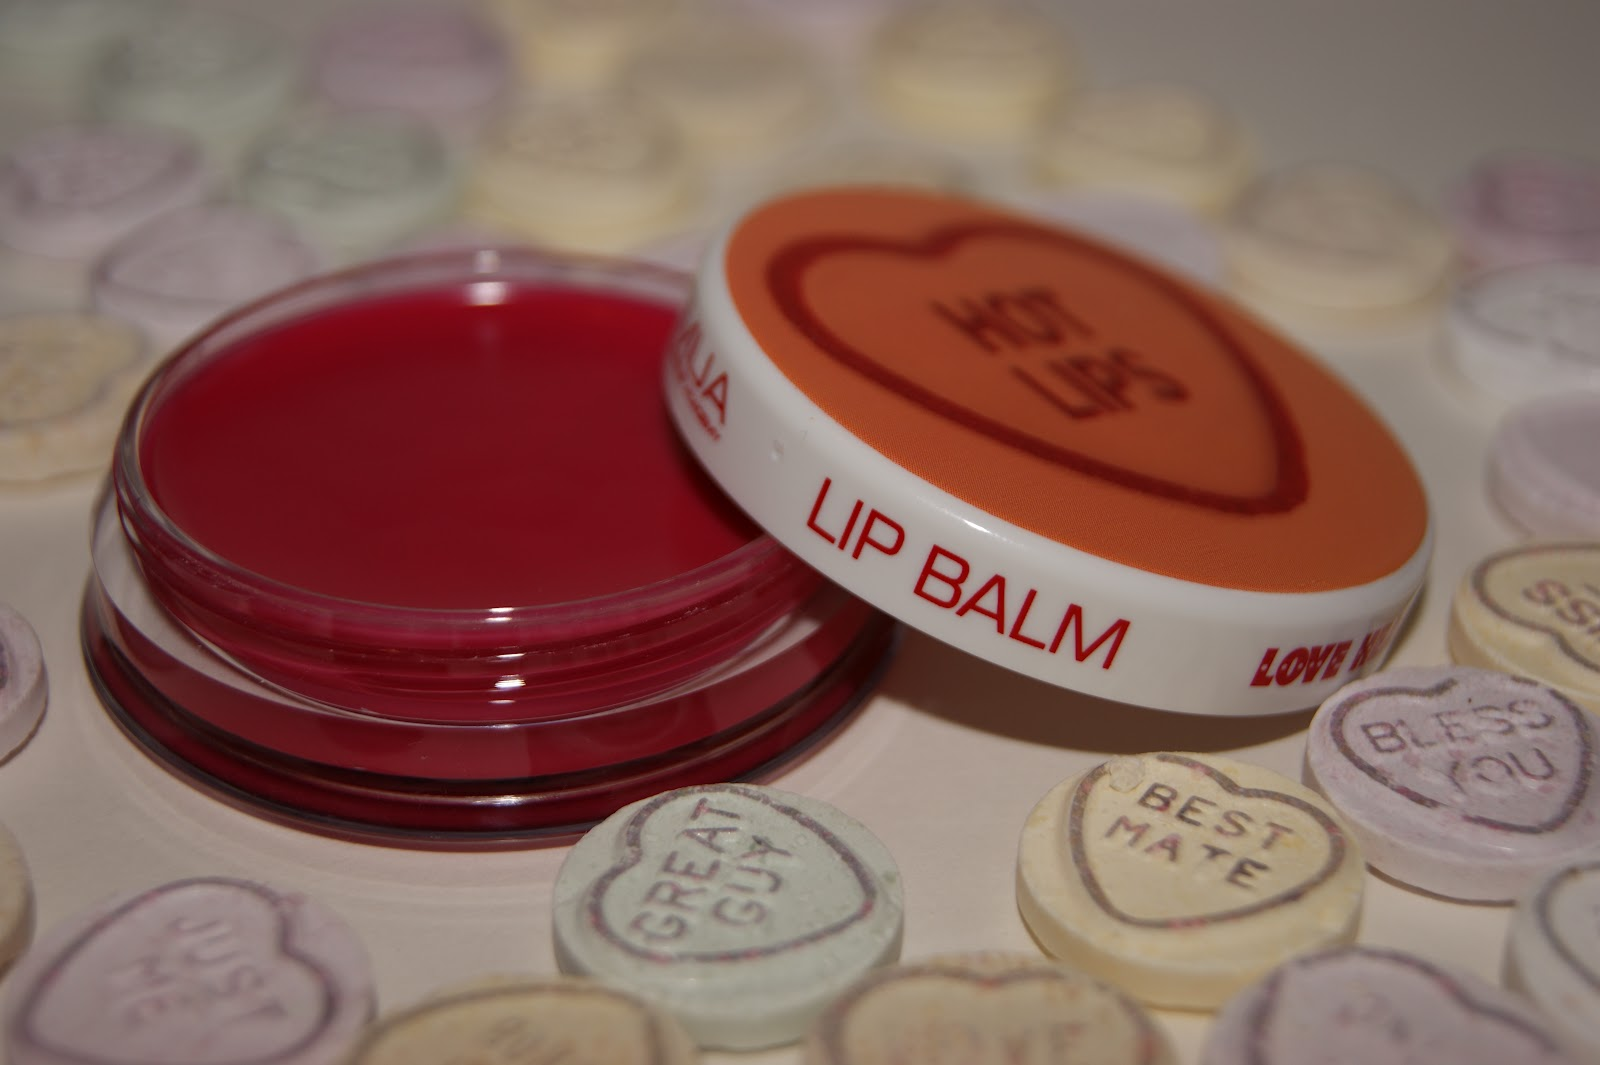 http://1.bp.blogspot.com/-CN8C3X4TWi0/Tza4oP6dIiI/AAAAAAAAK5Q/w9FQUN99FP8/s1600/MUA+Love+Heart+Lip+Balms+Review+and+Swatches+006.jpg